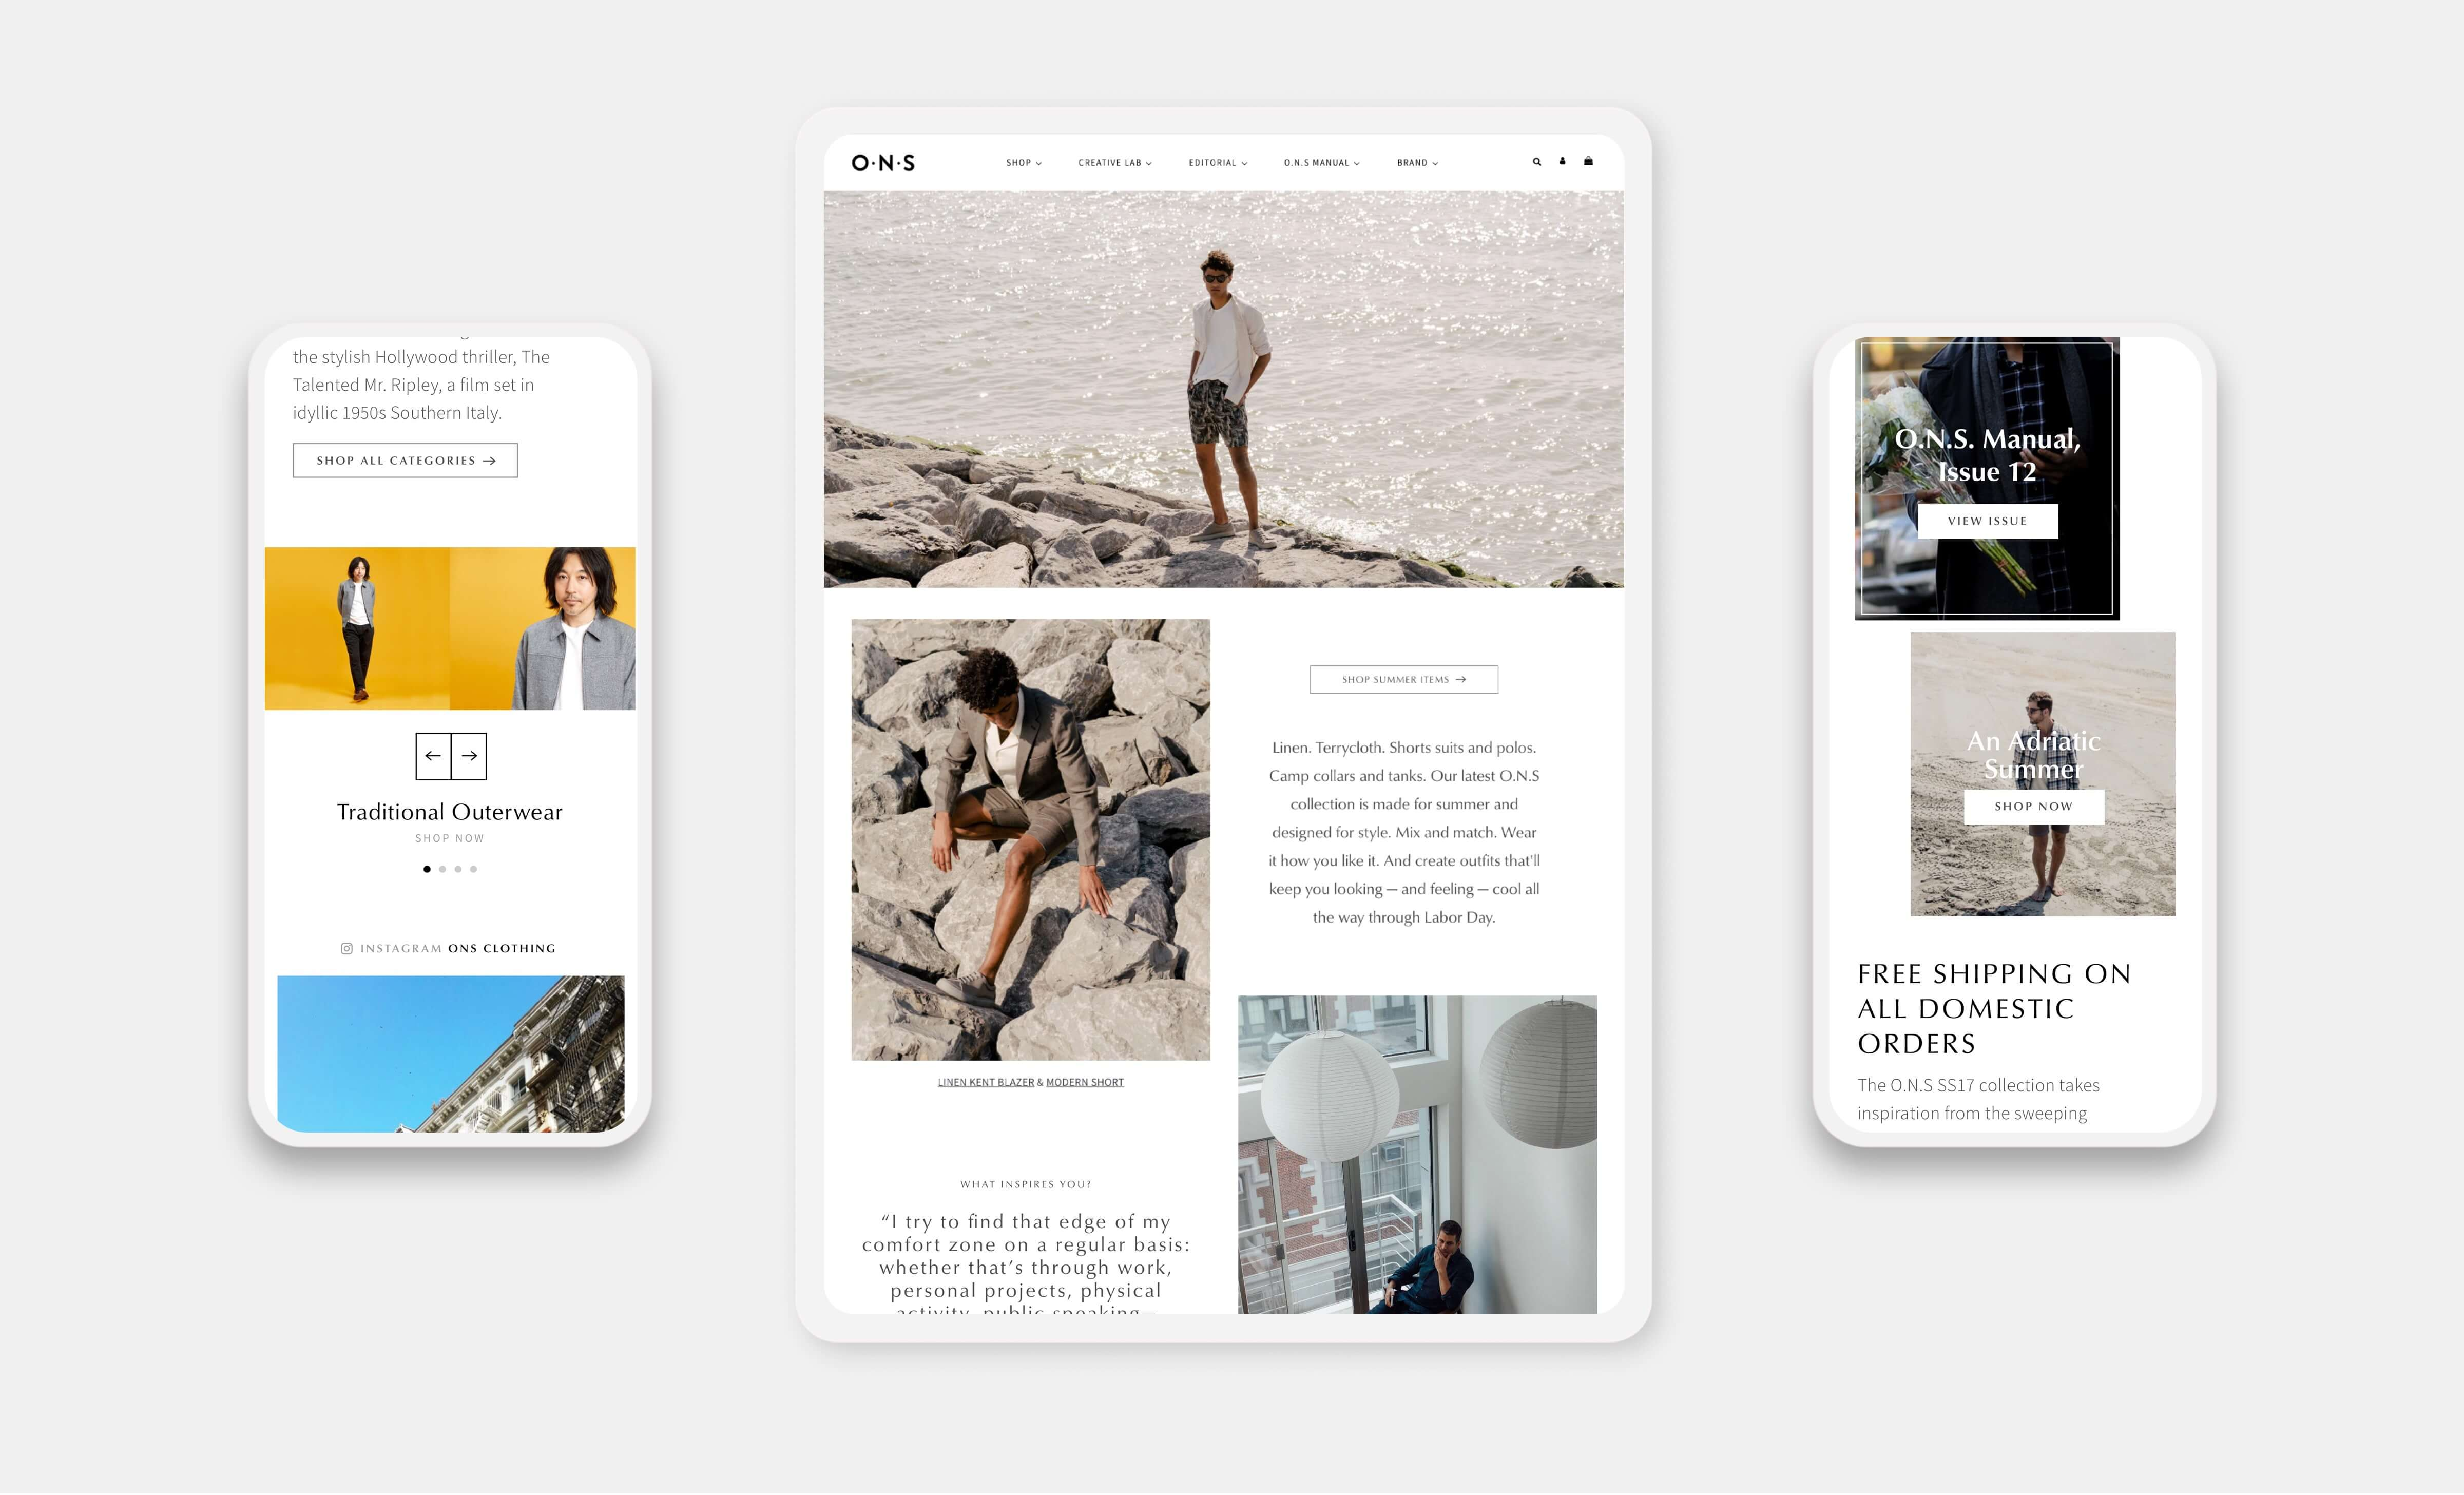 o n s website pages on smartphones and tablet